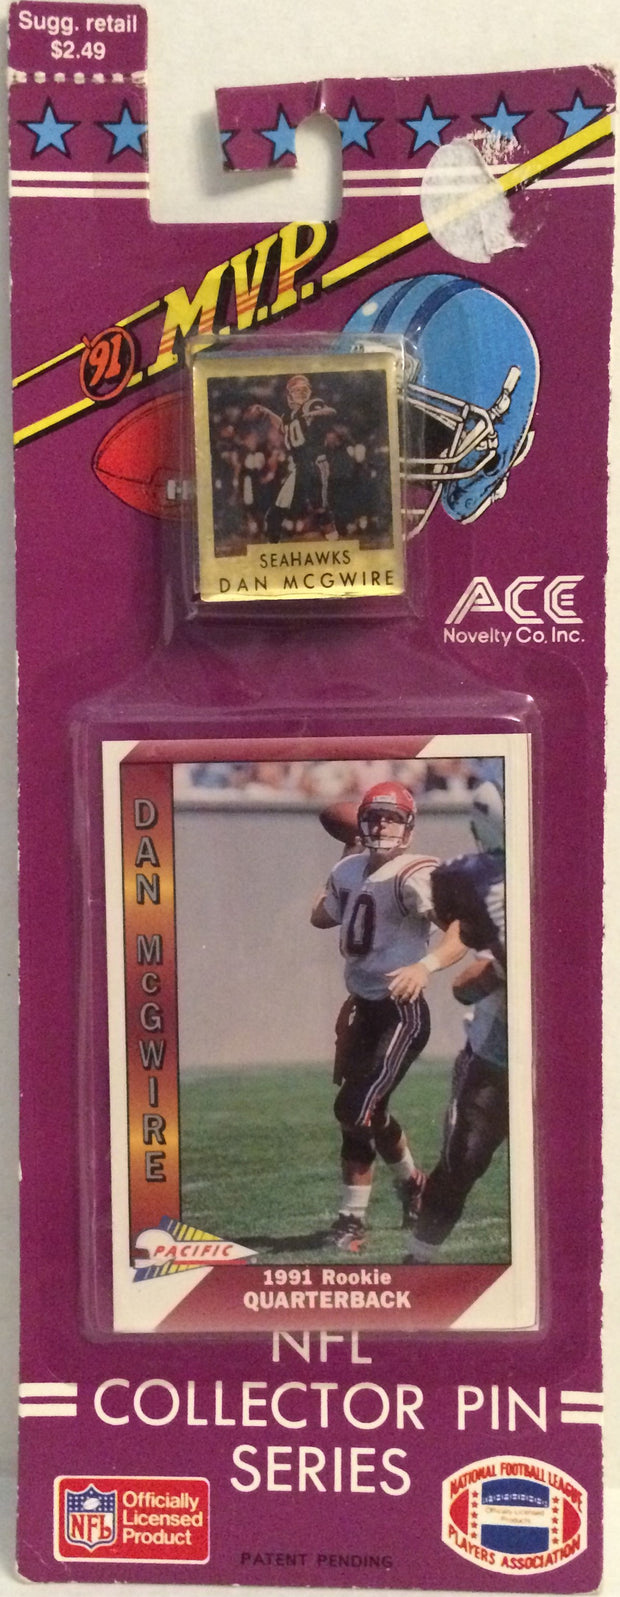 (TAS032607) - 1991 ACE NFL Collector Pin Series - Seattle Seahawks Dan McGwire, , Pins, NFL, The Angry Spider Vintage Toys & Collectibles Store